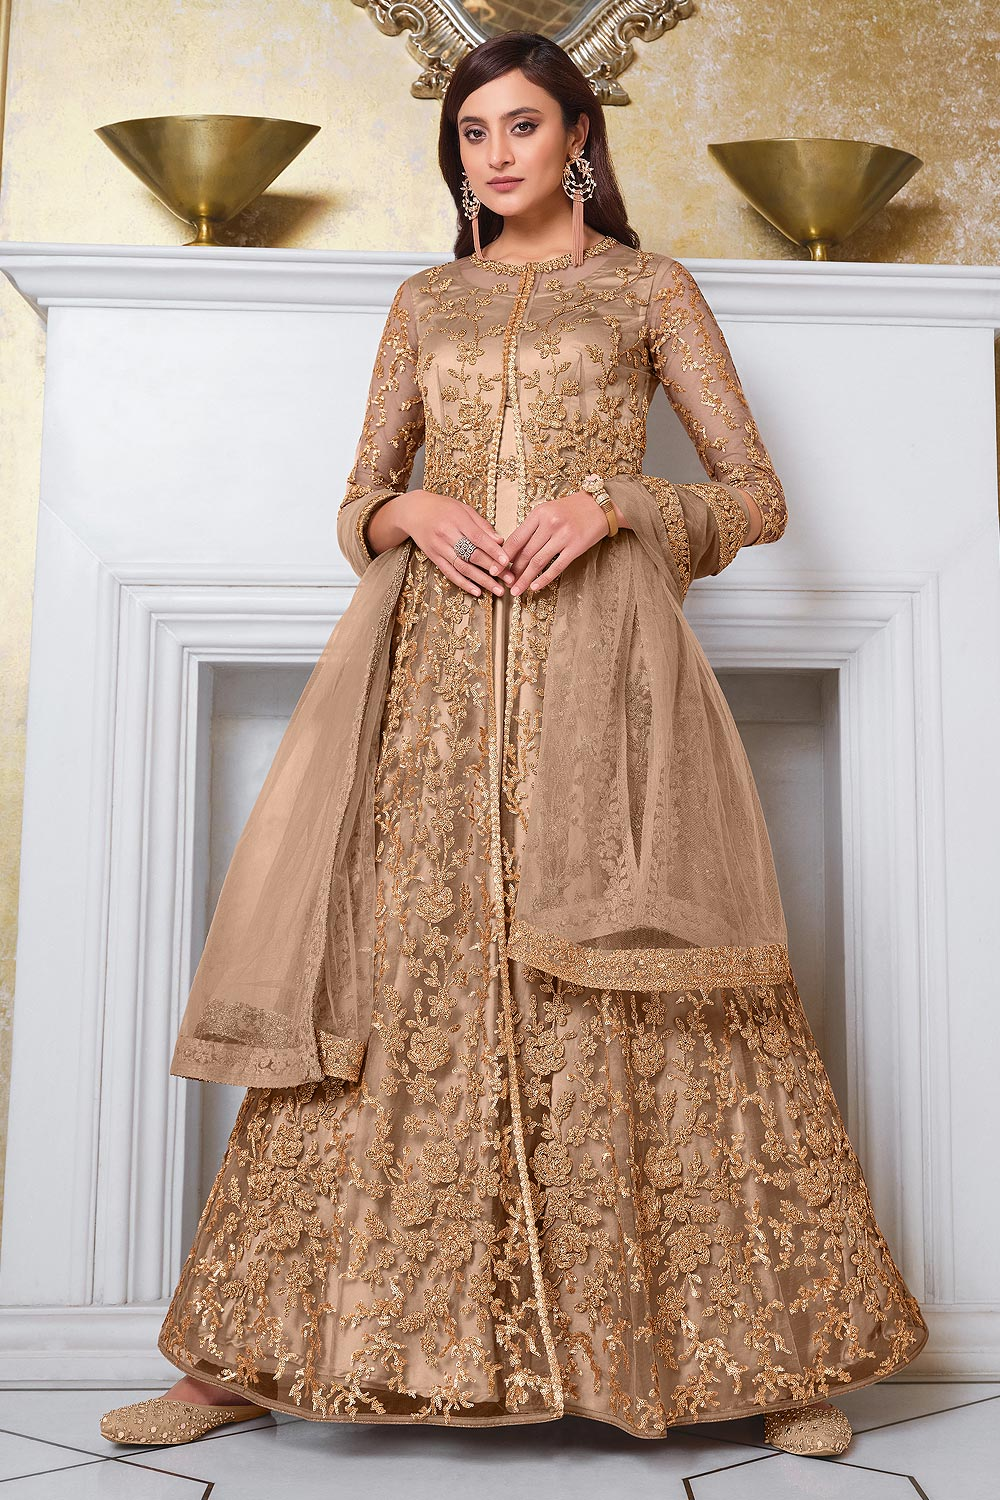 Caramel Brown Jacket Style Anarkali with Lehnga/Pant